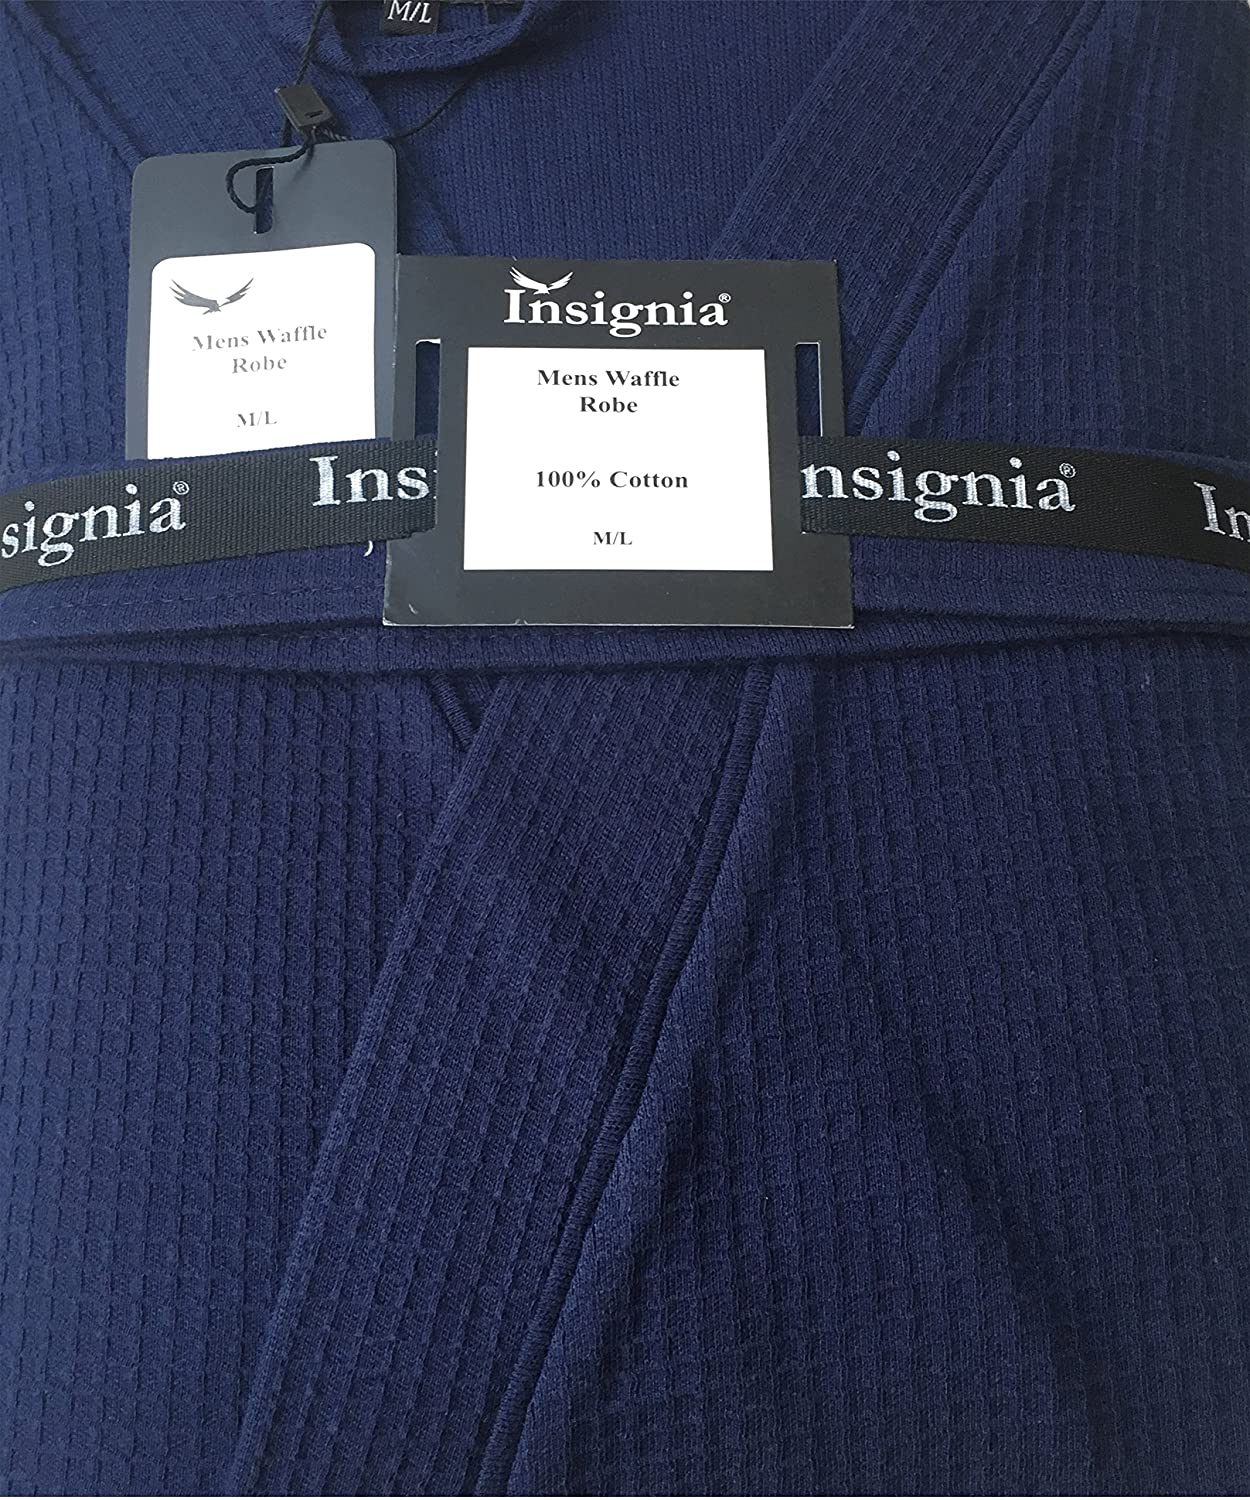 INSIGNIA Men's 100% Cotton Robe Dressing Gown, Soft Waffle Robe Wrap Loungewear